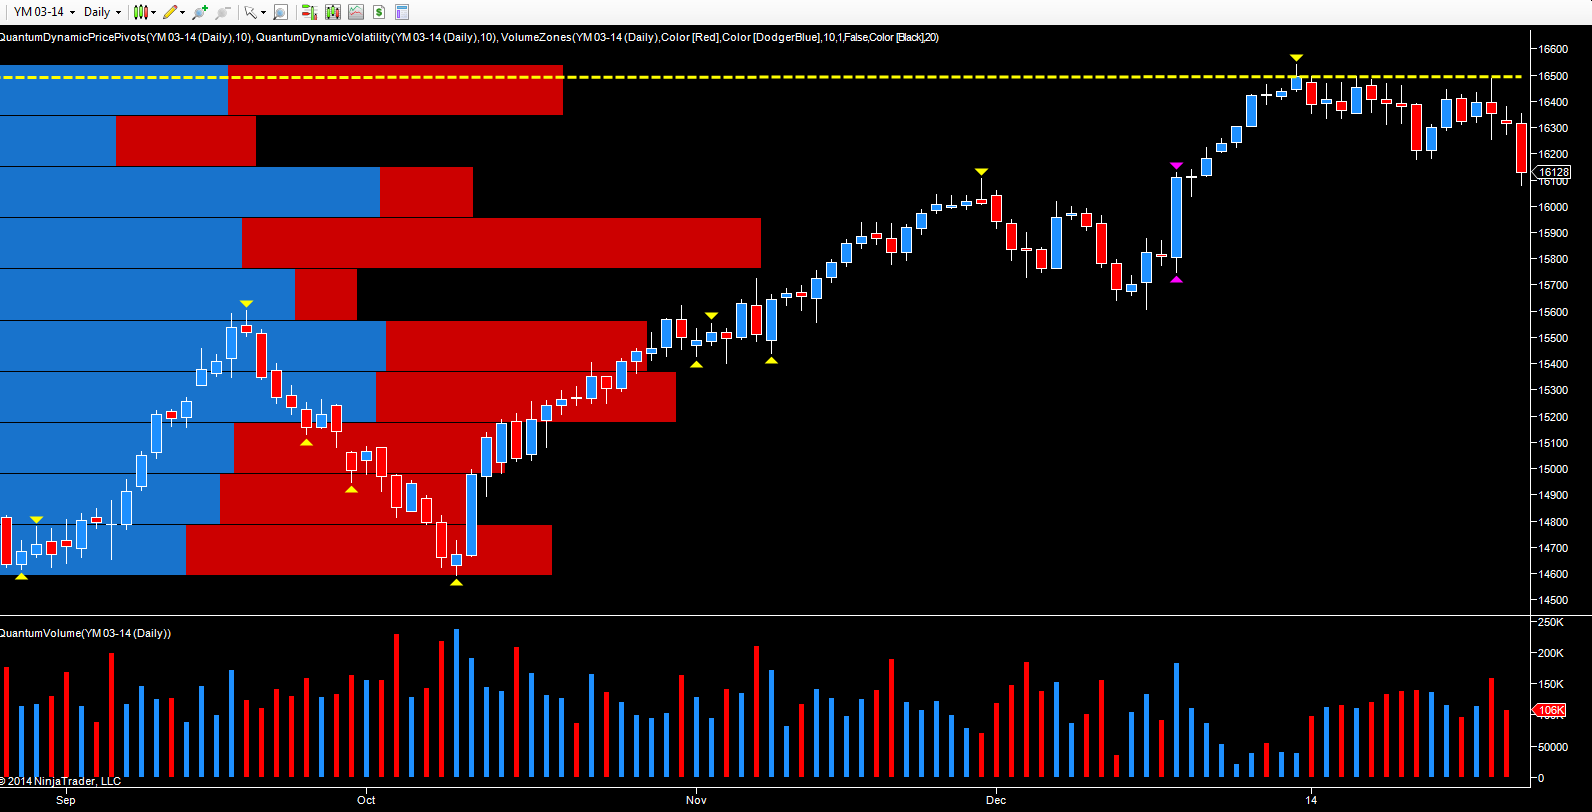 March Emini Futures - YM daily chart